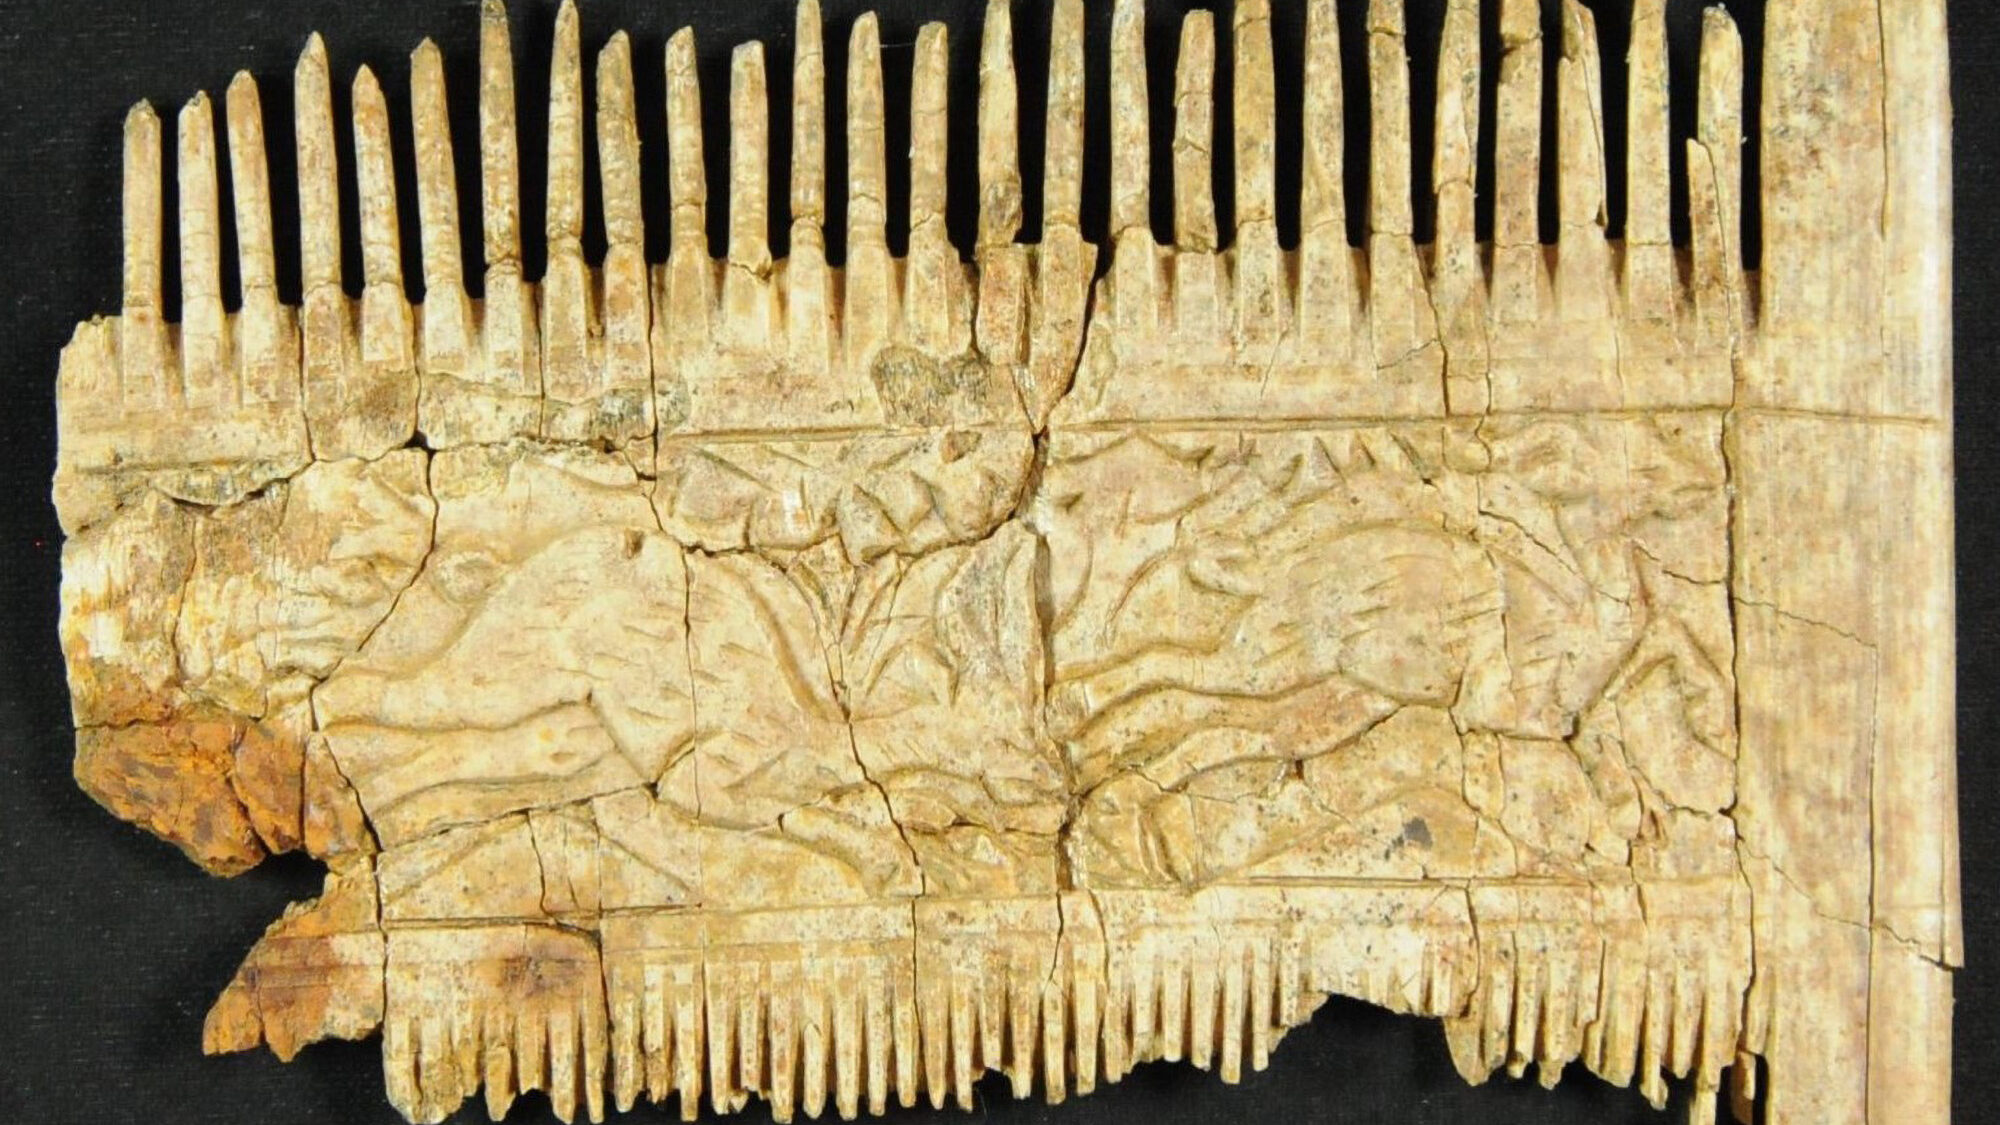 Comb Raider: Ancient Horse Warrior Buried With Rare African Comb For His Afterlife Beard